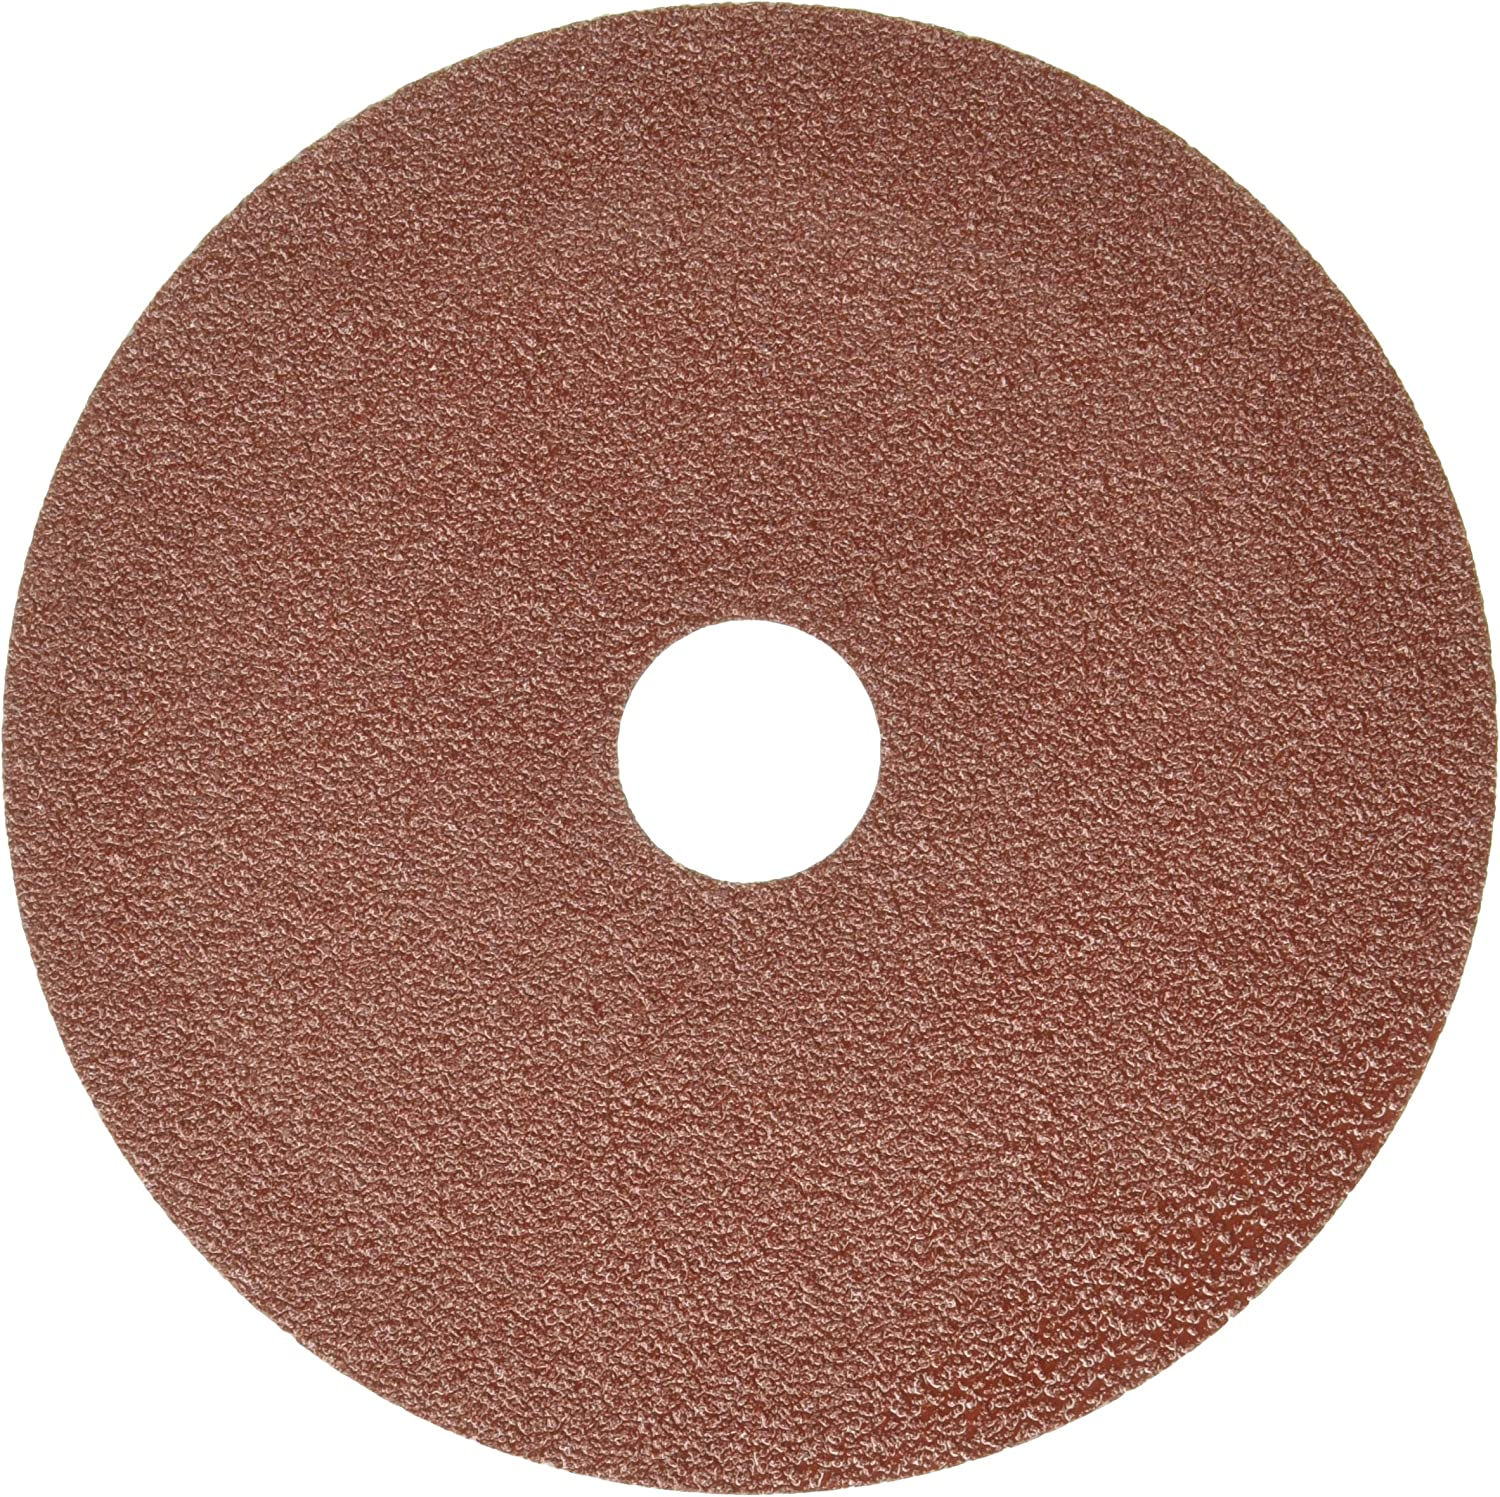 K-T Industries 5-6550 5 x 80 Grit Sanding Disc